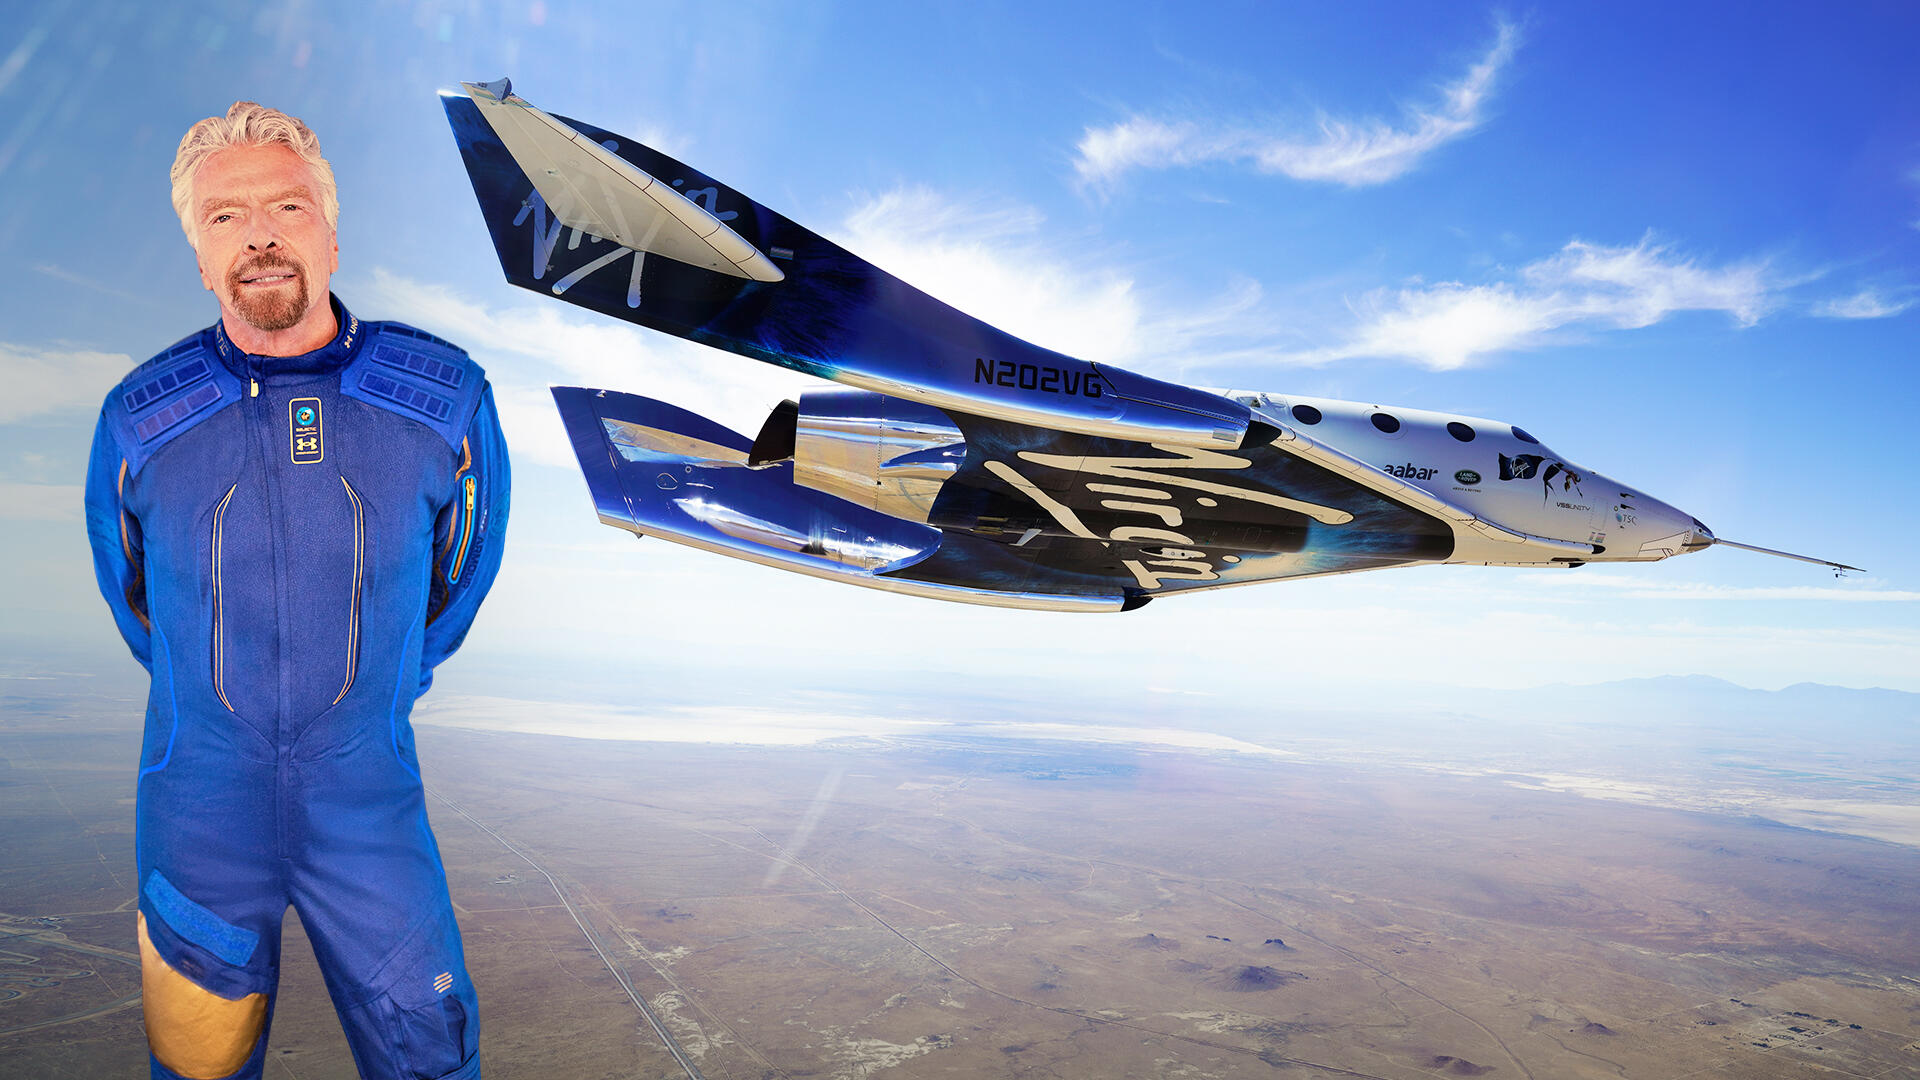 - yt branson launch 1 - Virgin Galactic set to launch Richard Branson to space: Why you should care